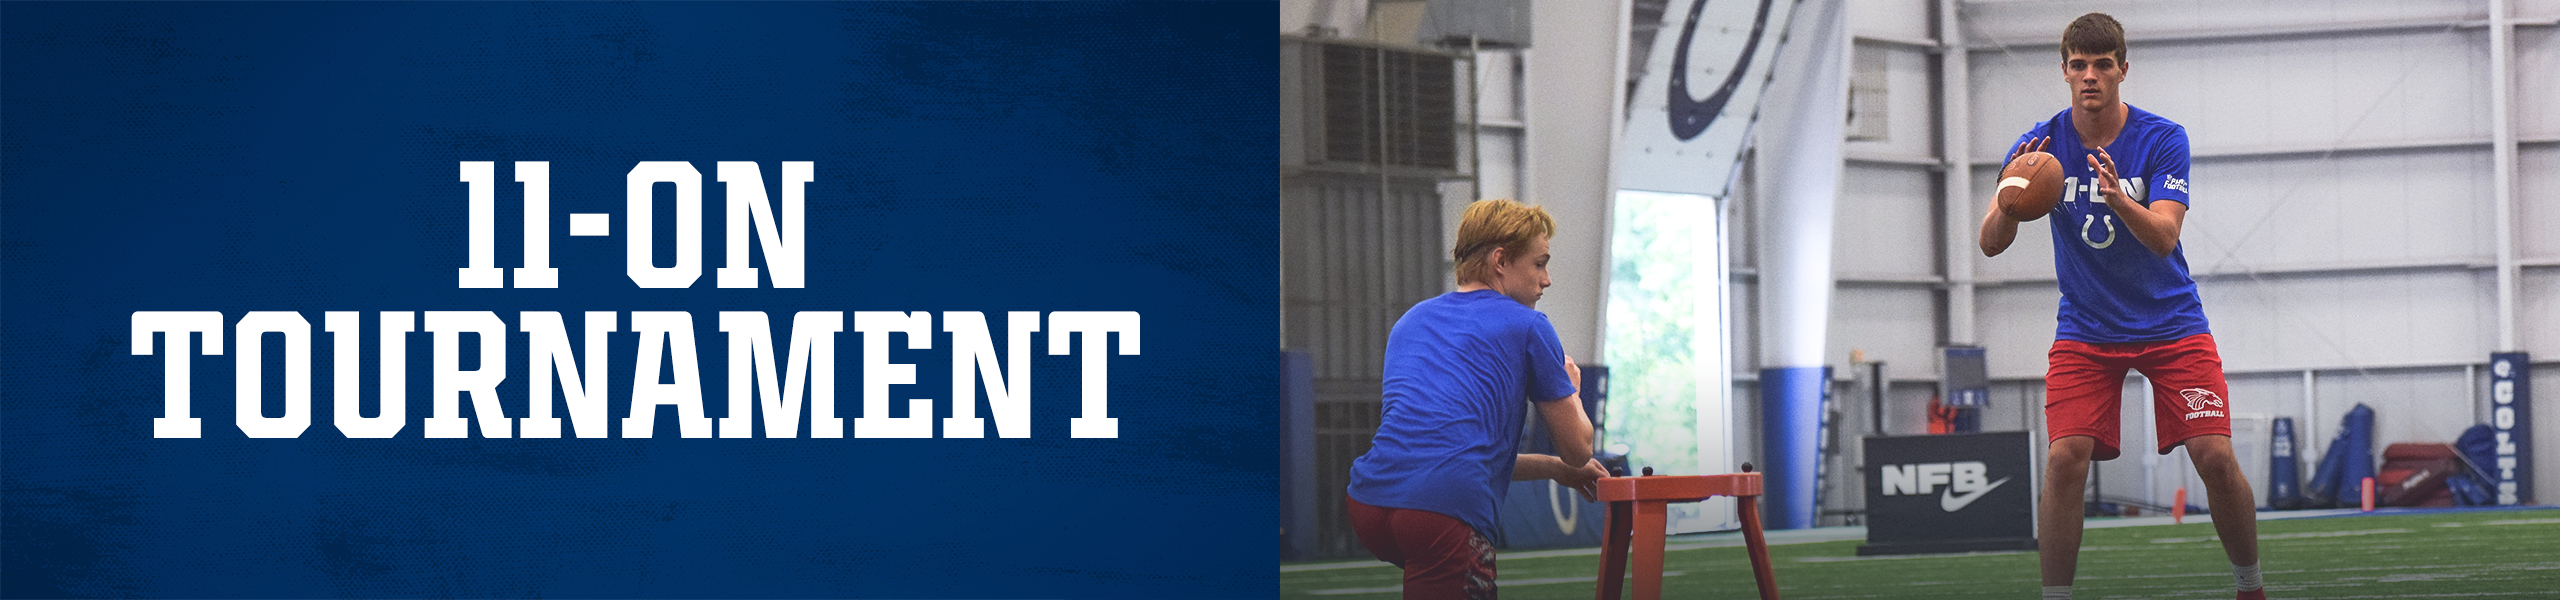 Indianapolis Colts 11-On Tournament